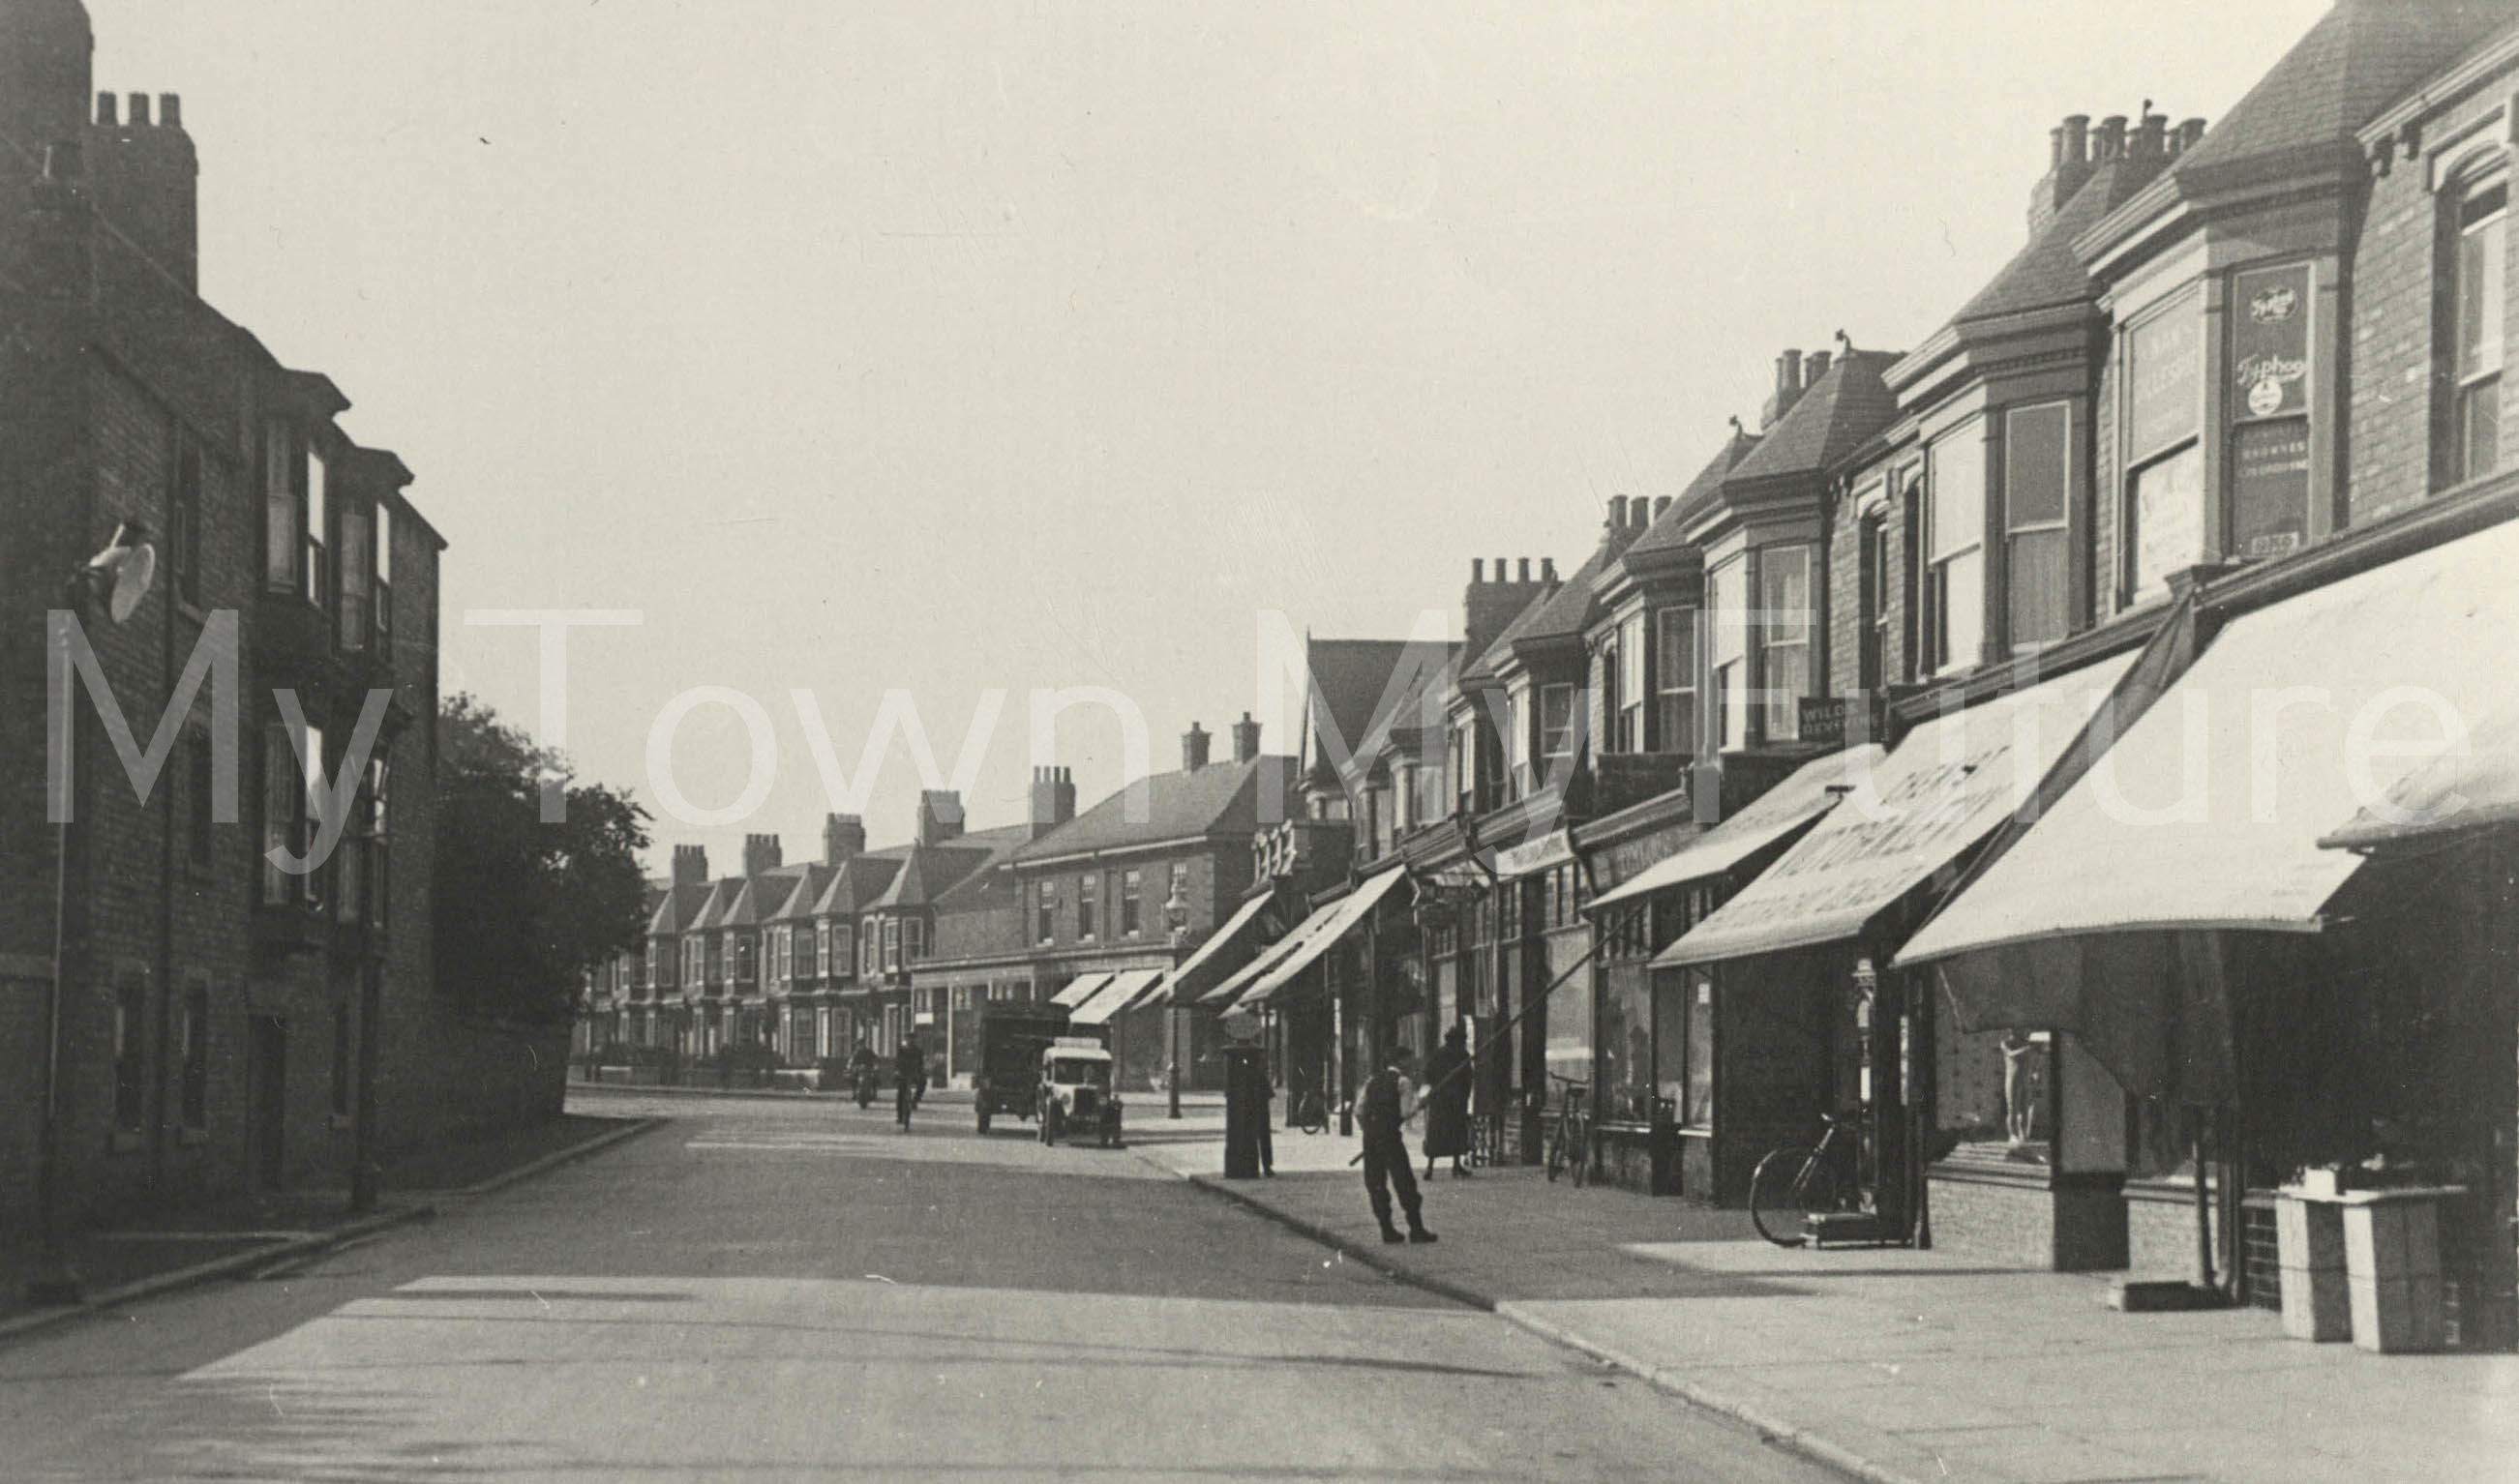 Roman Road, Linthorpe, Middlesbrough